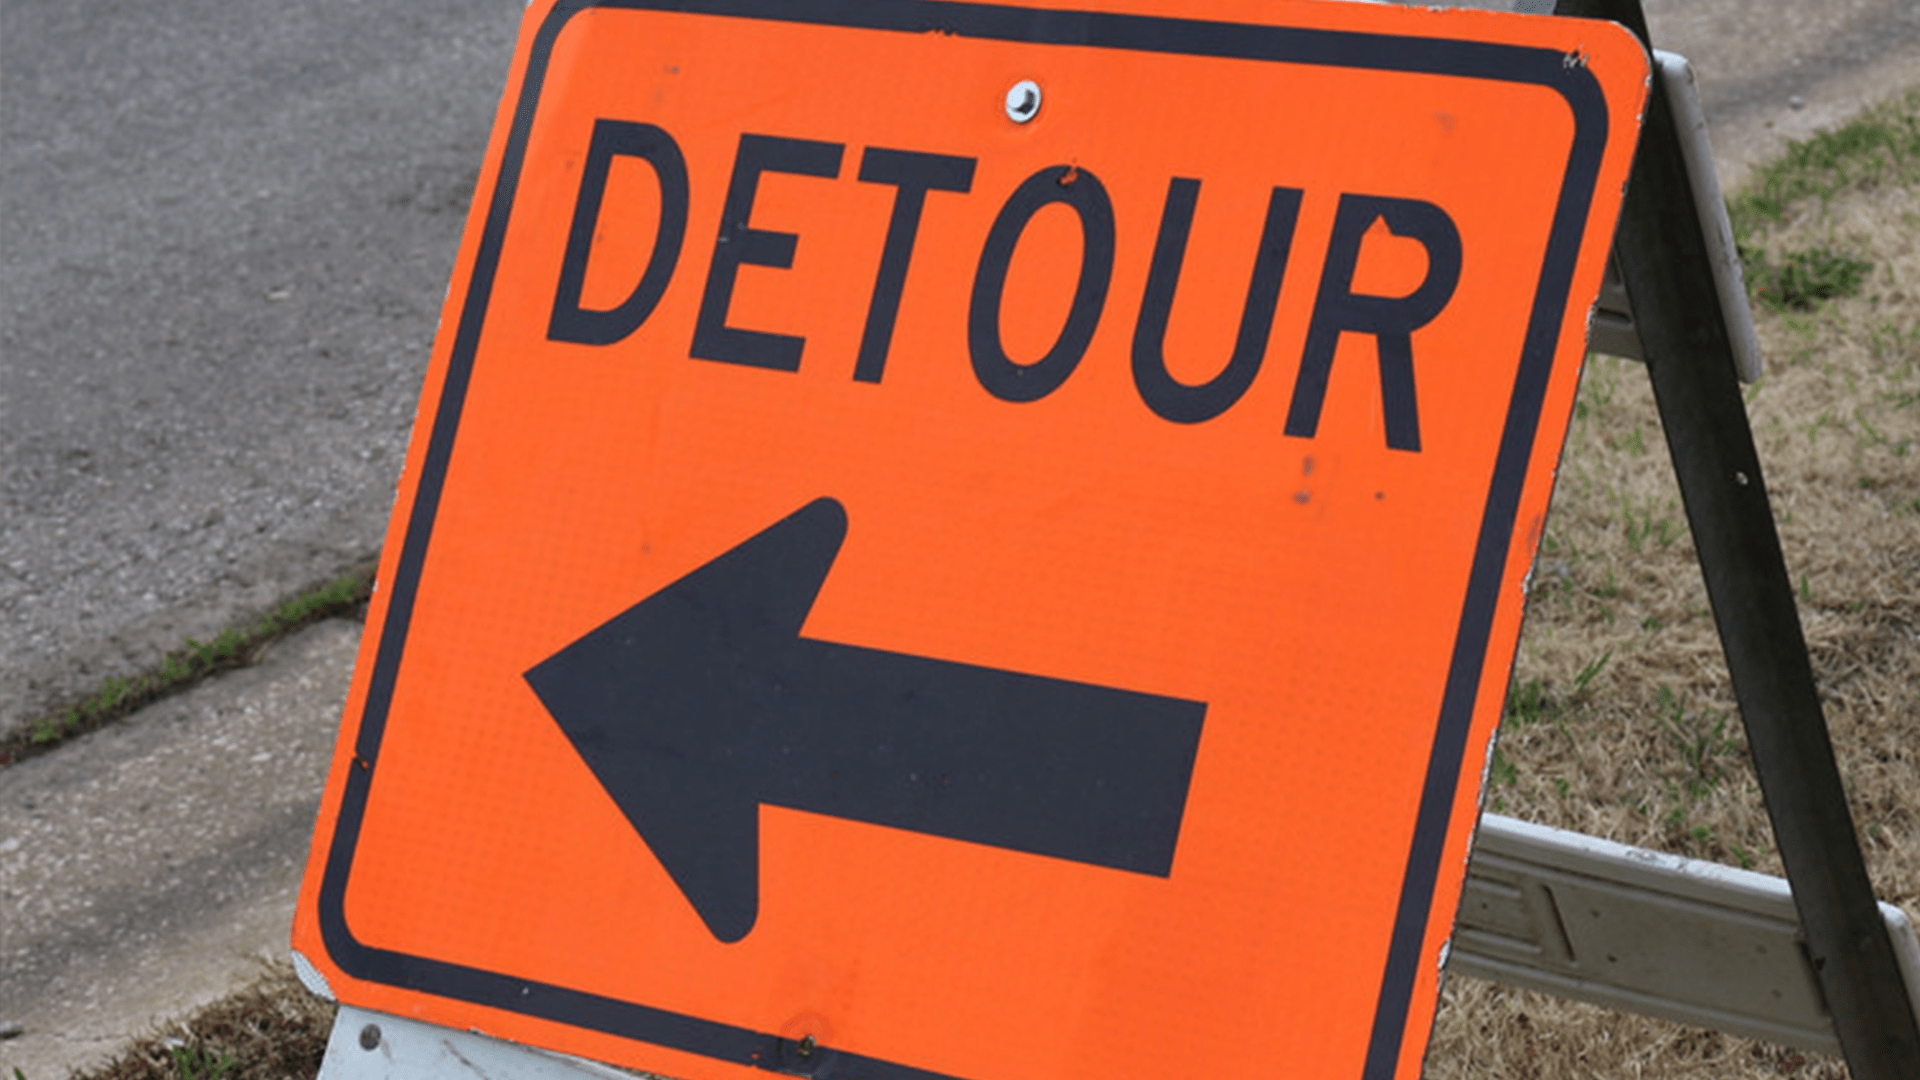 DETOUR SIGN_1532466134600.png.jpg